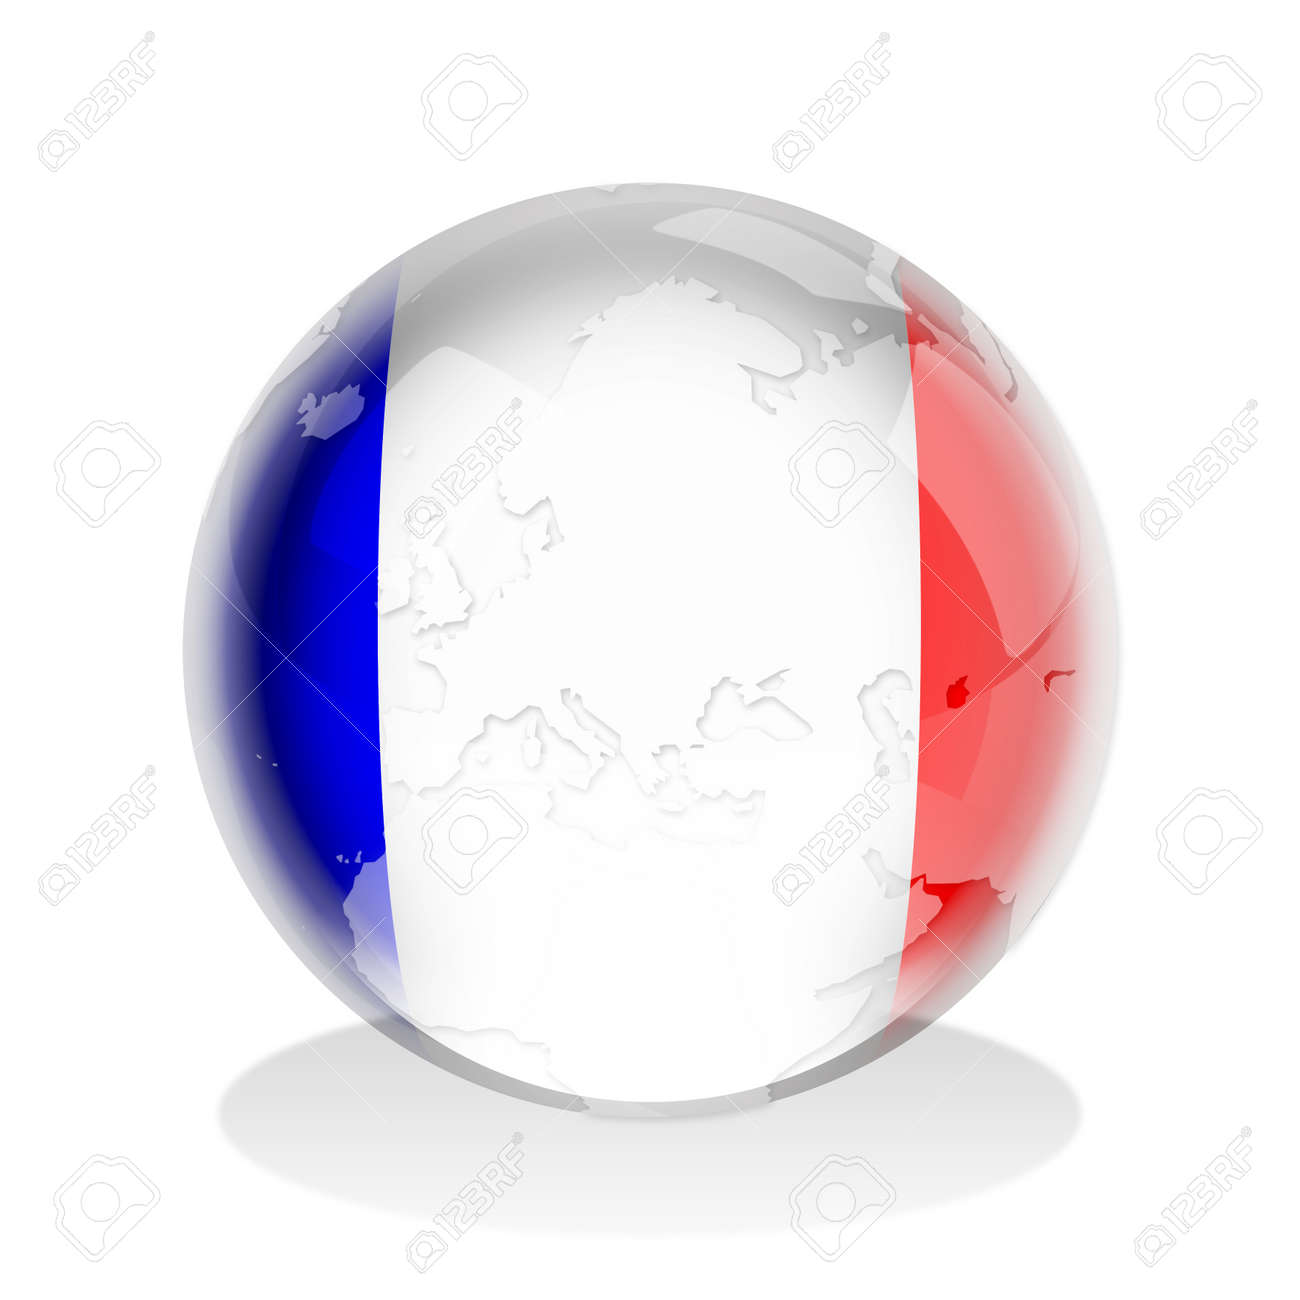 Illustration of a glass sphere with French flag and world map in it Stock Illustration - 9300105